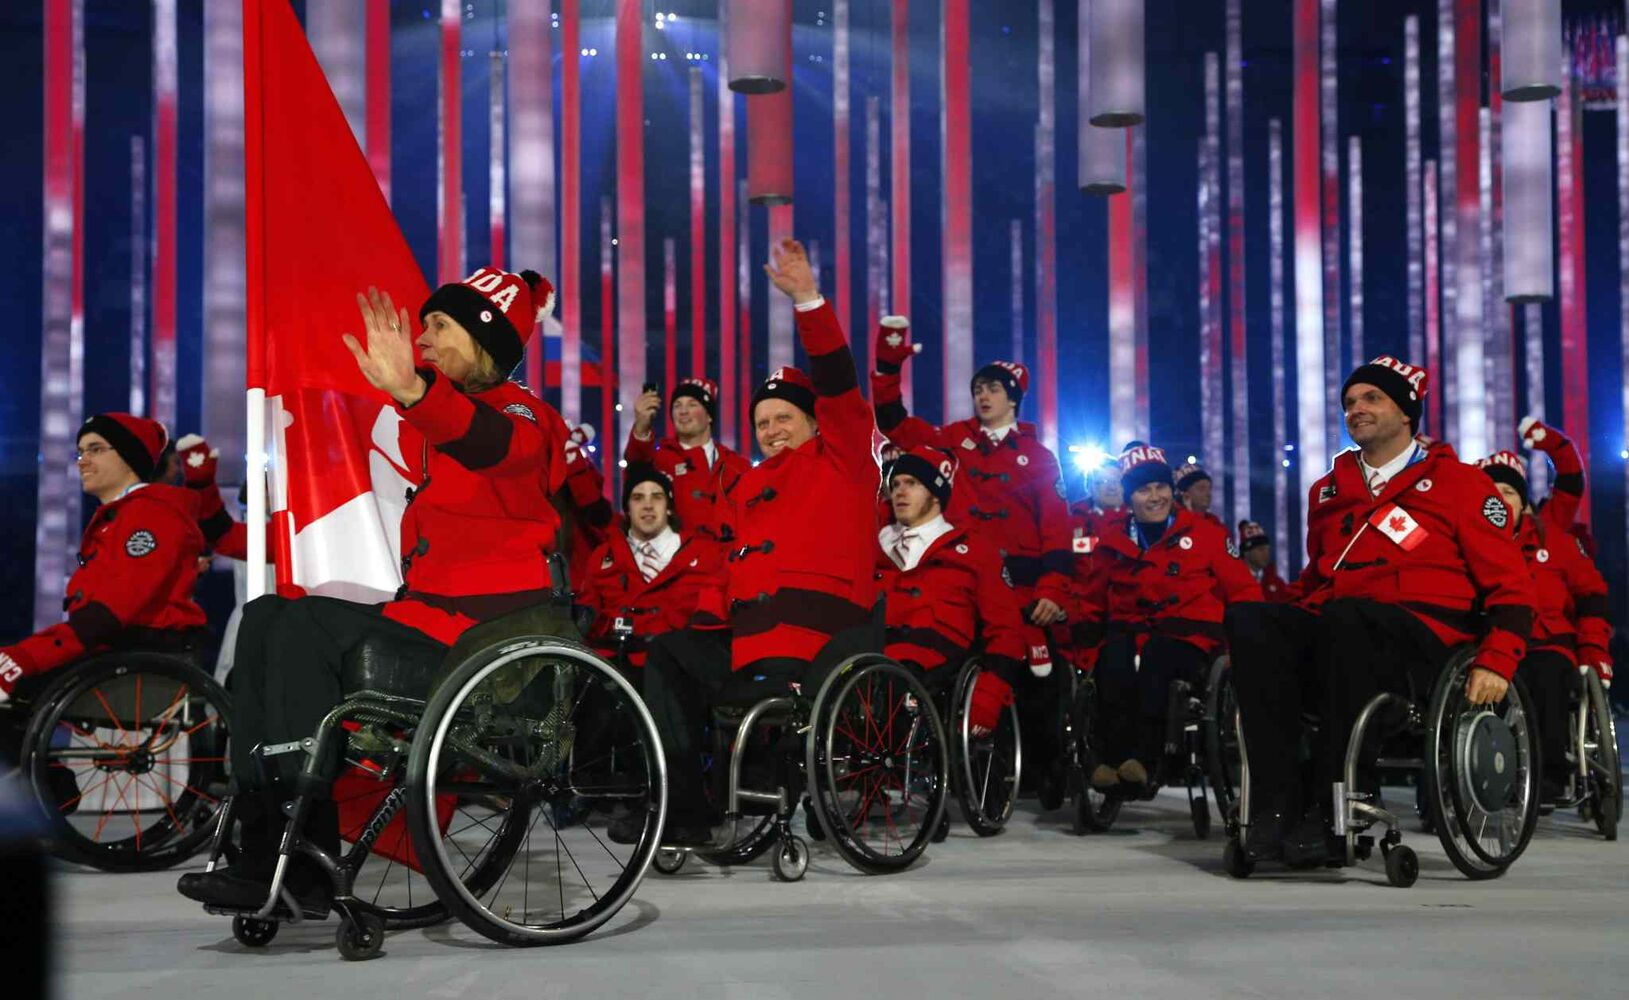 Athletes and officials of Canada enter the arena during attend the opening ceremony of the 2014 Winter Paralympics at the Fisht Olympic stadium in Sochi, Russia, Friday, March 7, 2014.  (Dmitry Lovetsky / The Associated Press)